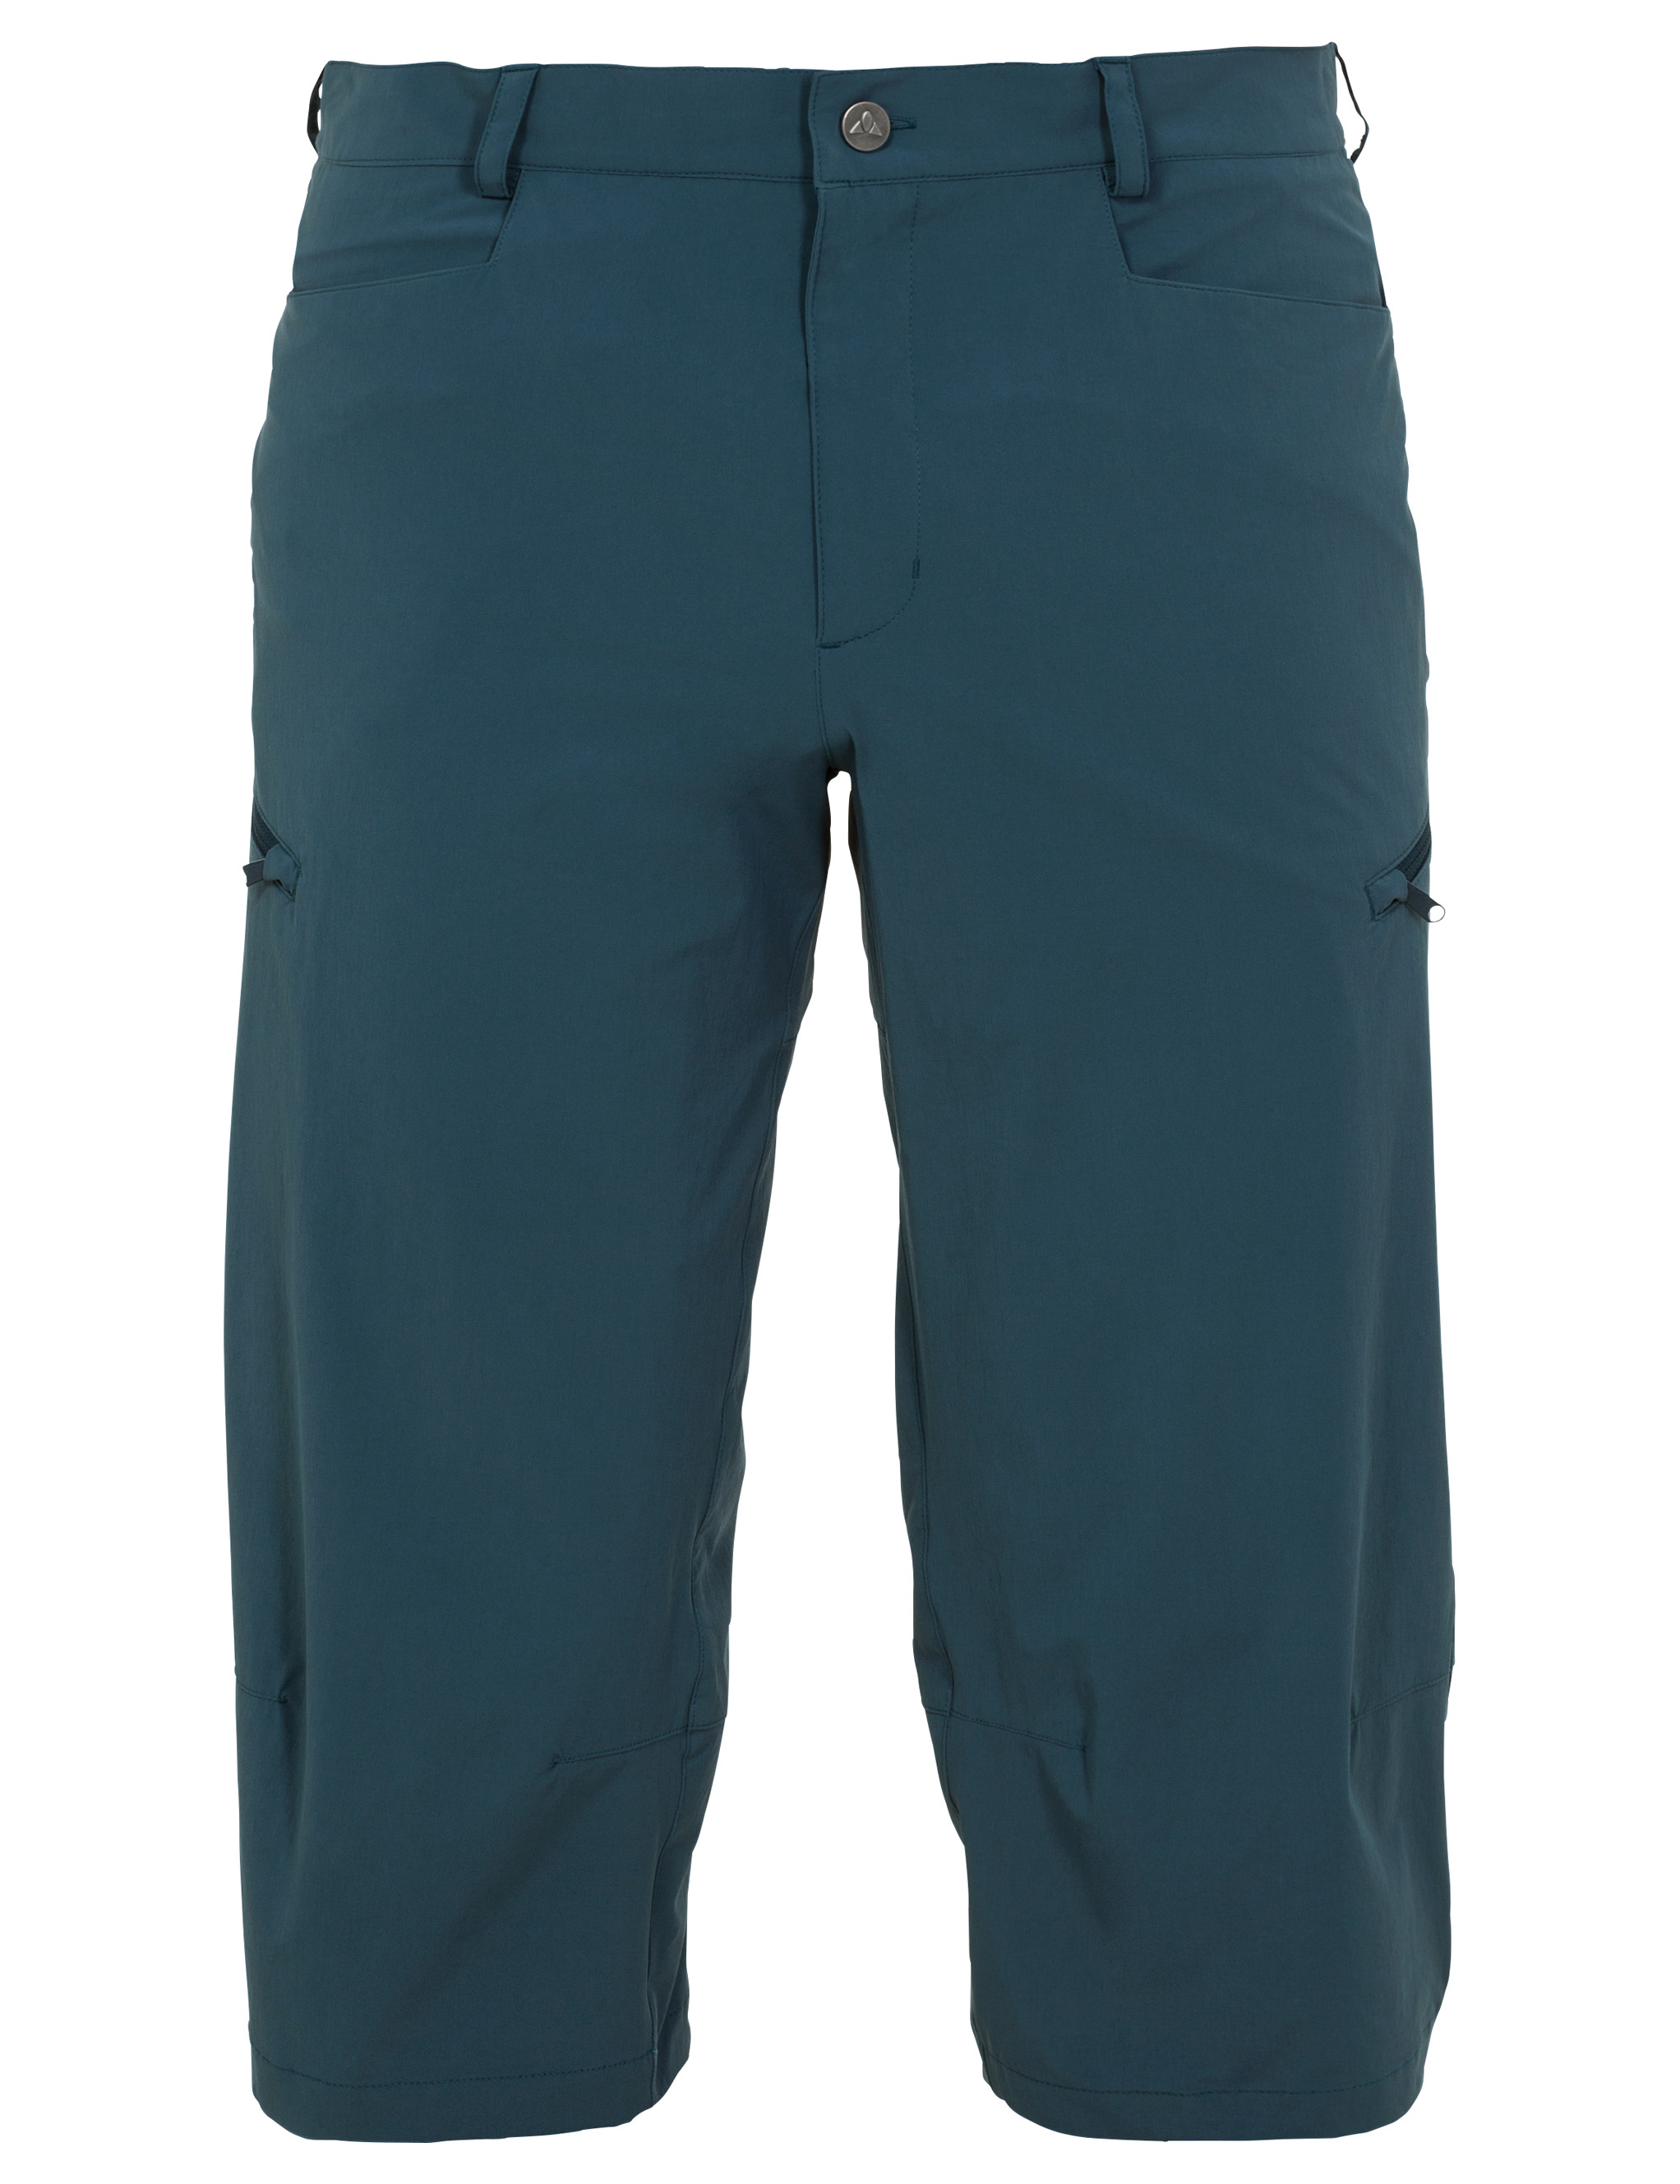 VAUDE Men´s Yaki 3/4 Pants dark petrol Größe S - schneider-sports